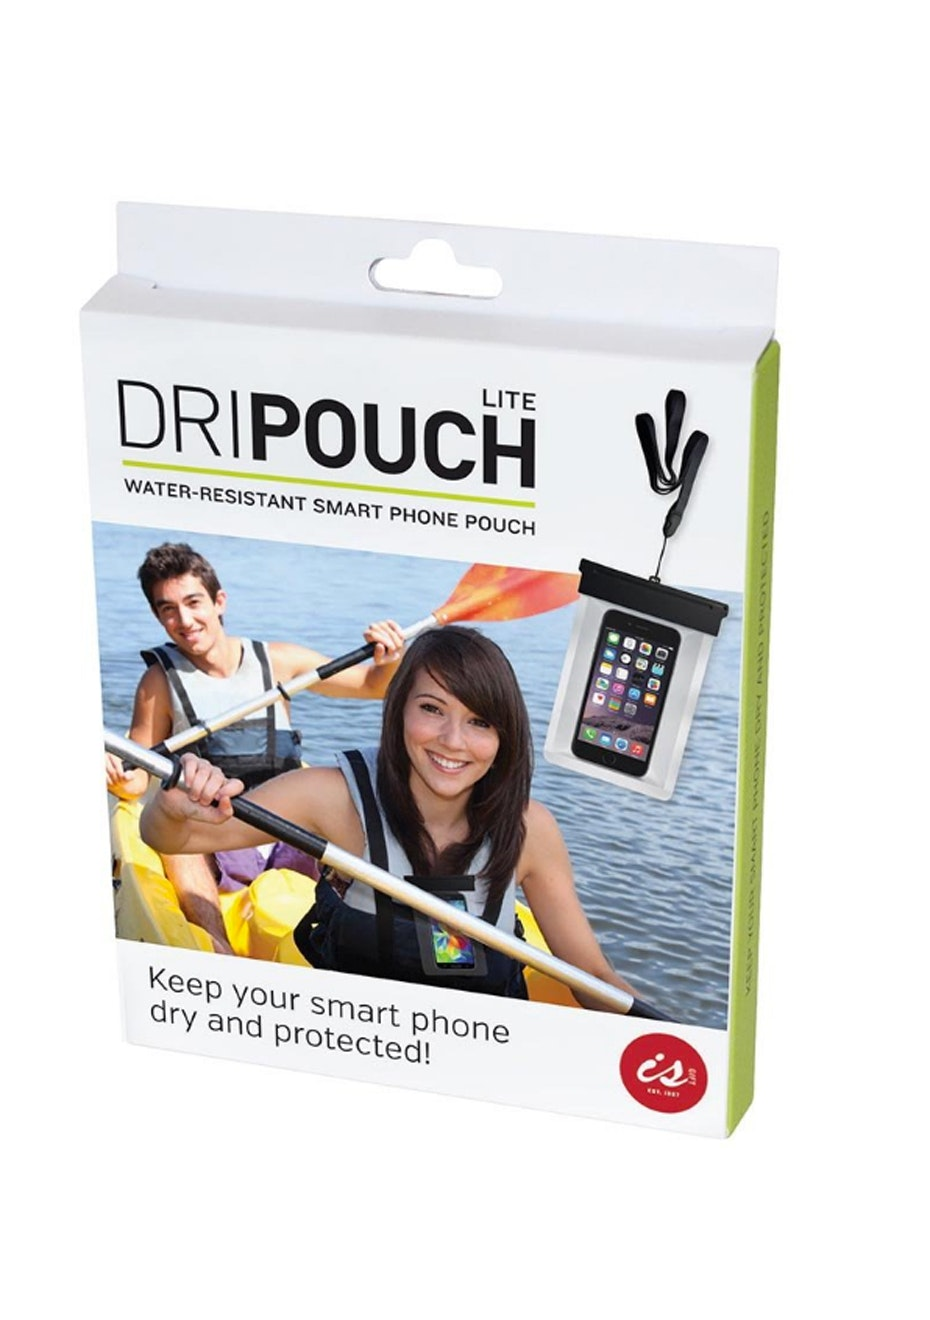 DriPouch Lite - Water Resistant Smart Phone Pouch